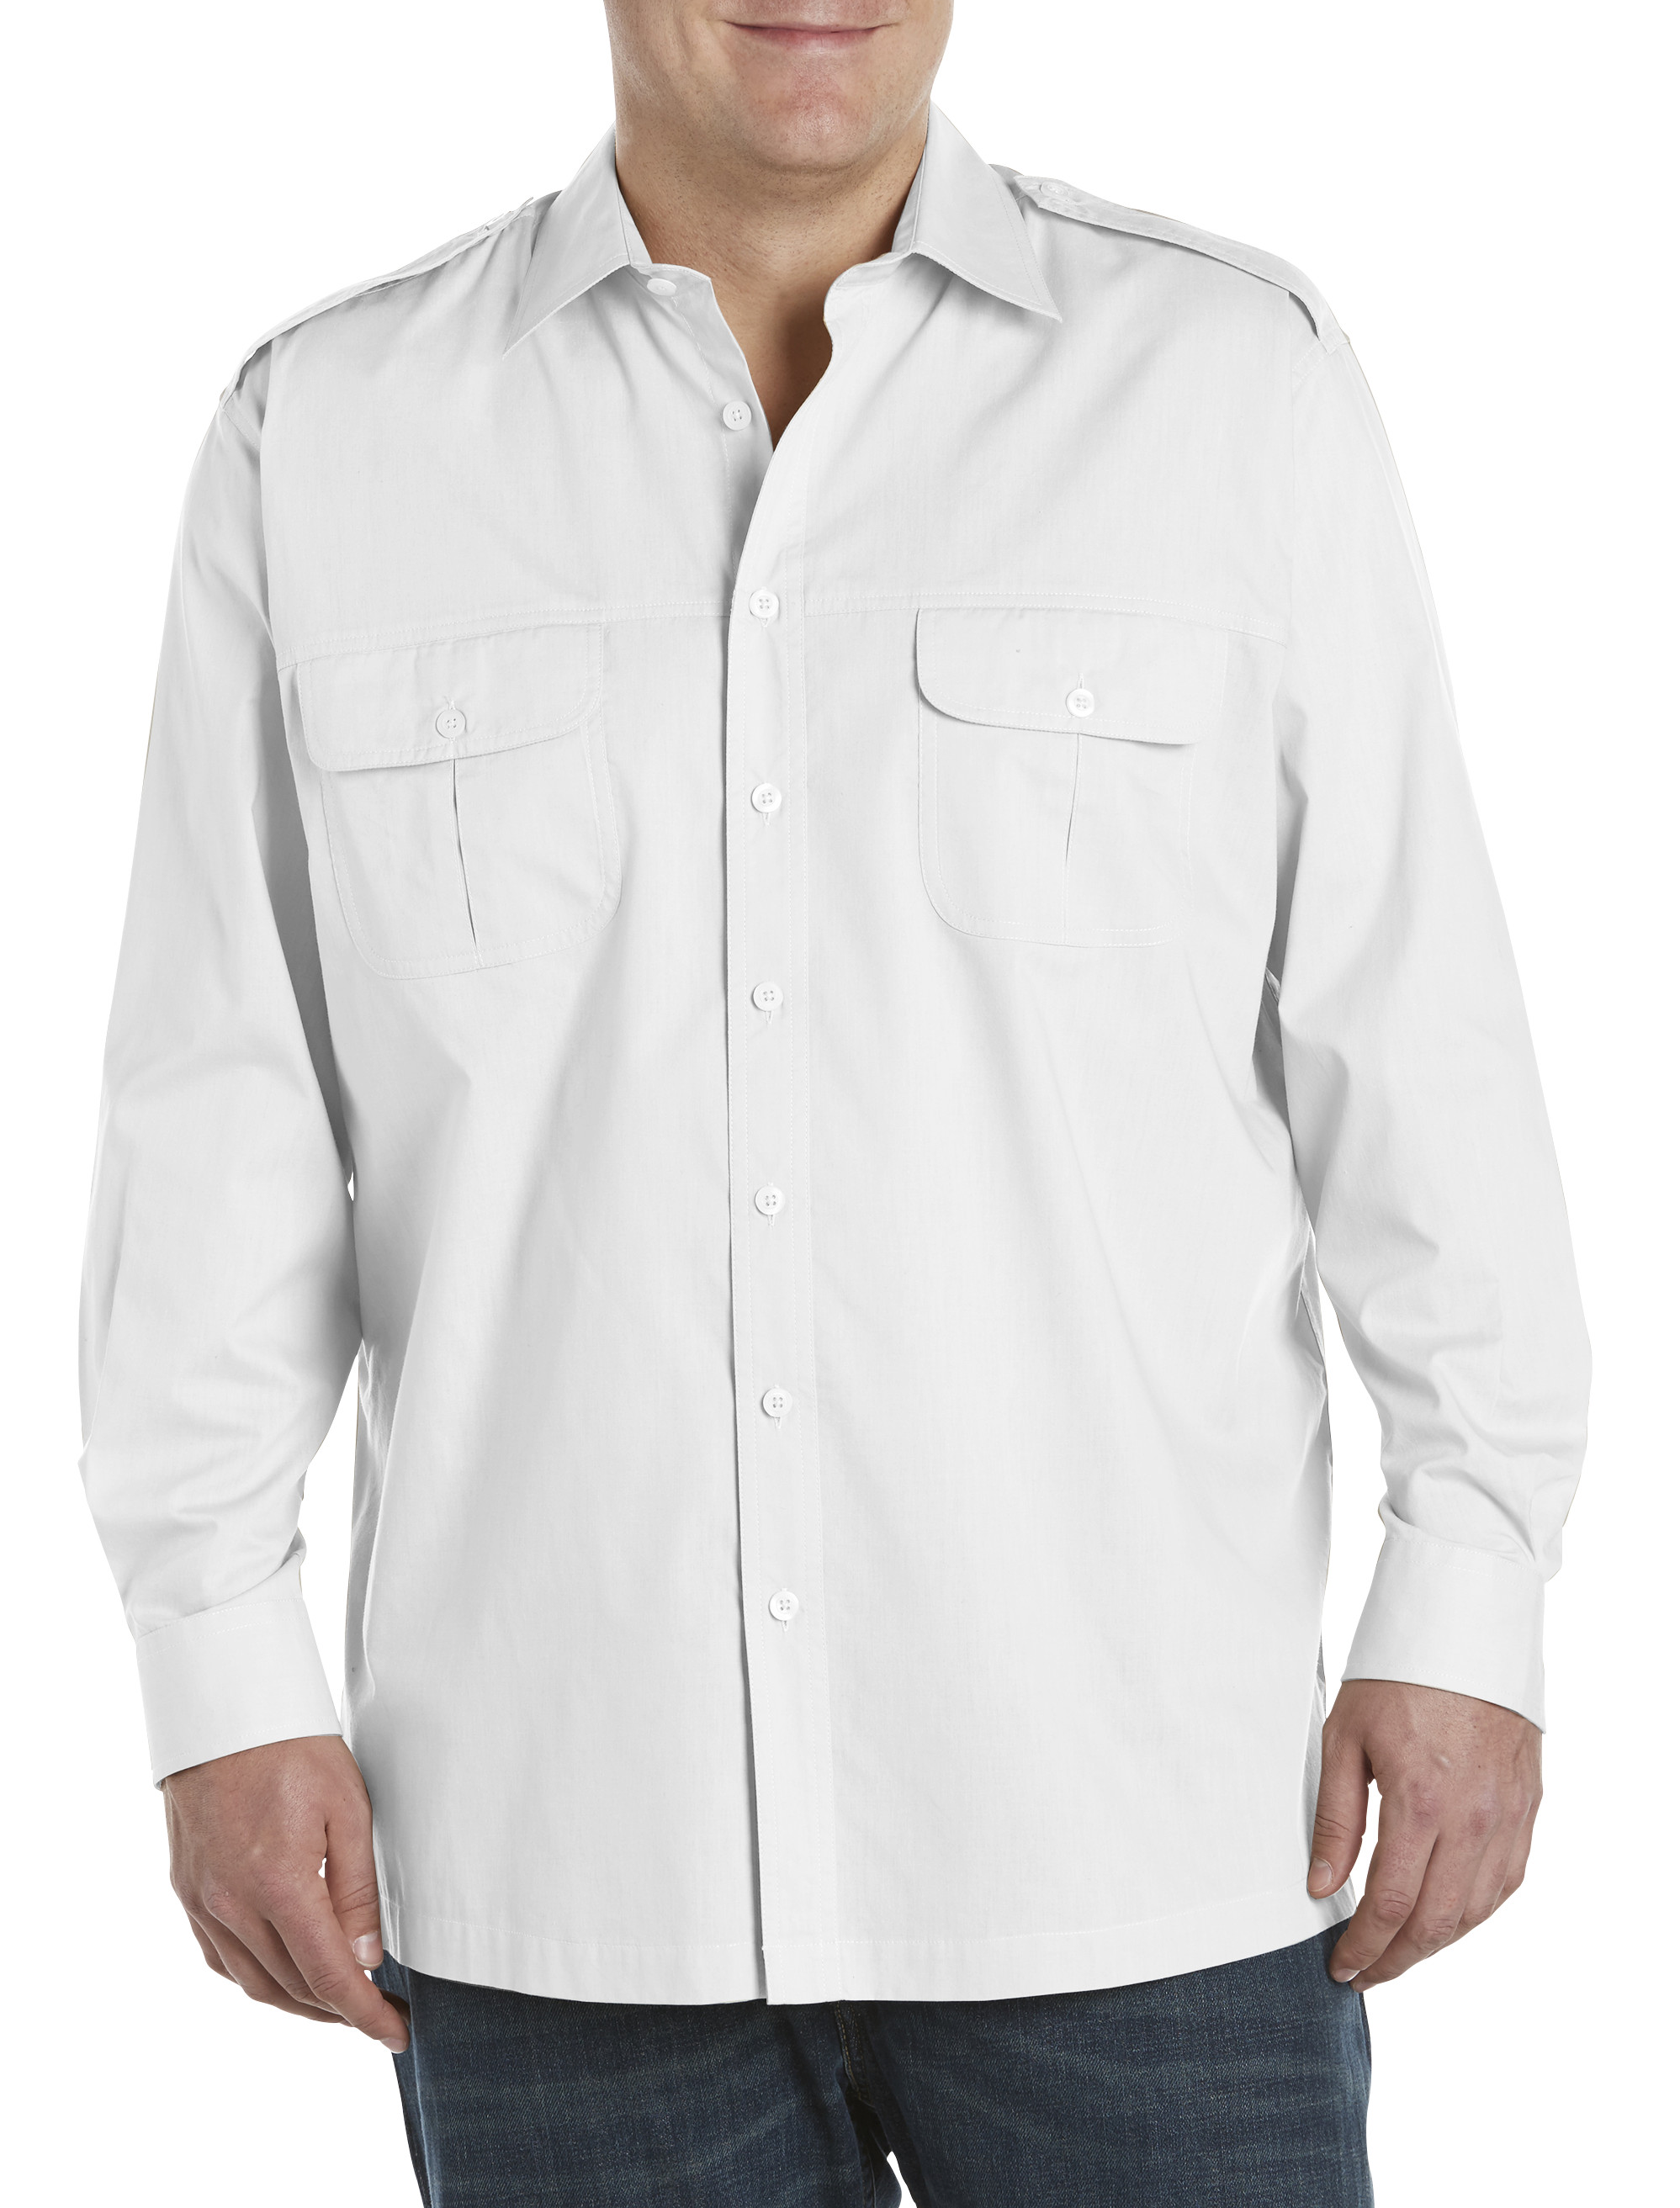 Harbor bay long sleeve pilot sport shirt casual male xl for Big and tall long sleeve shirts